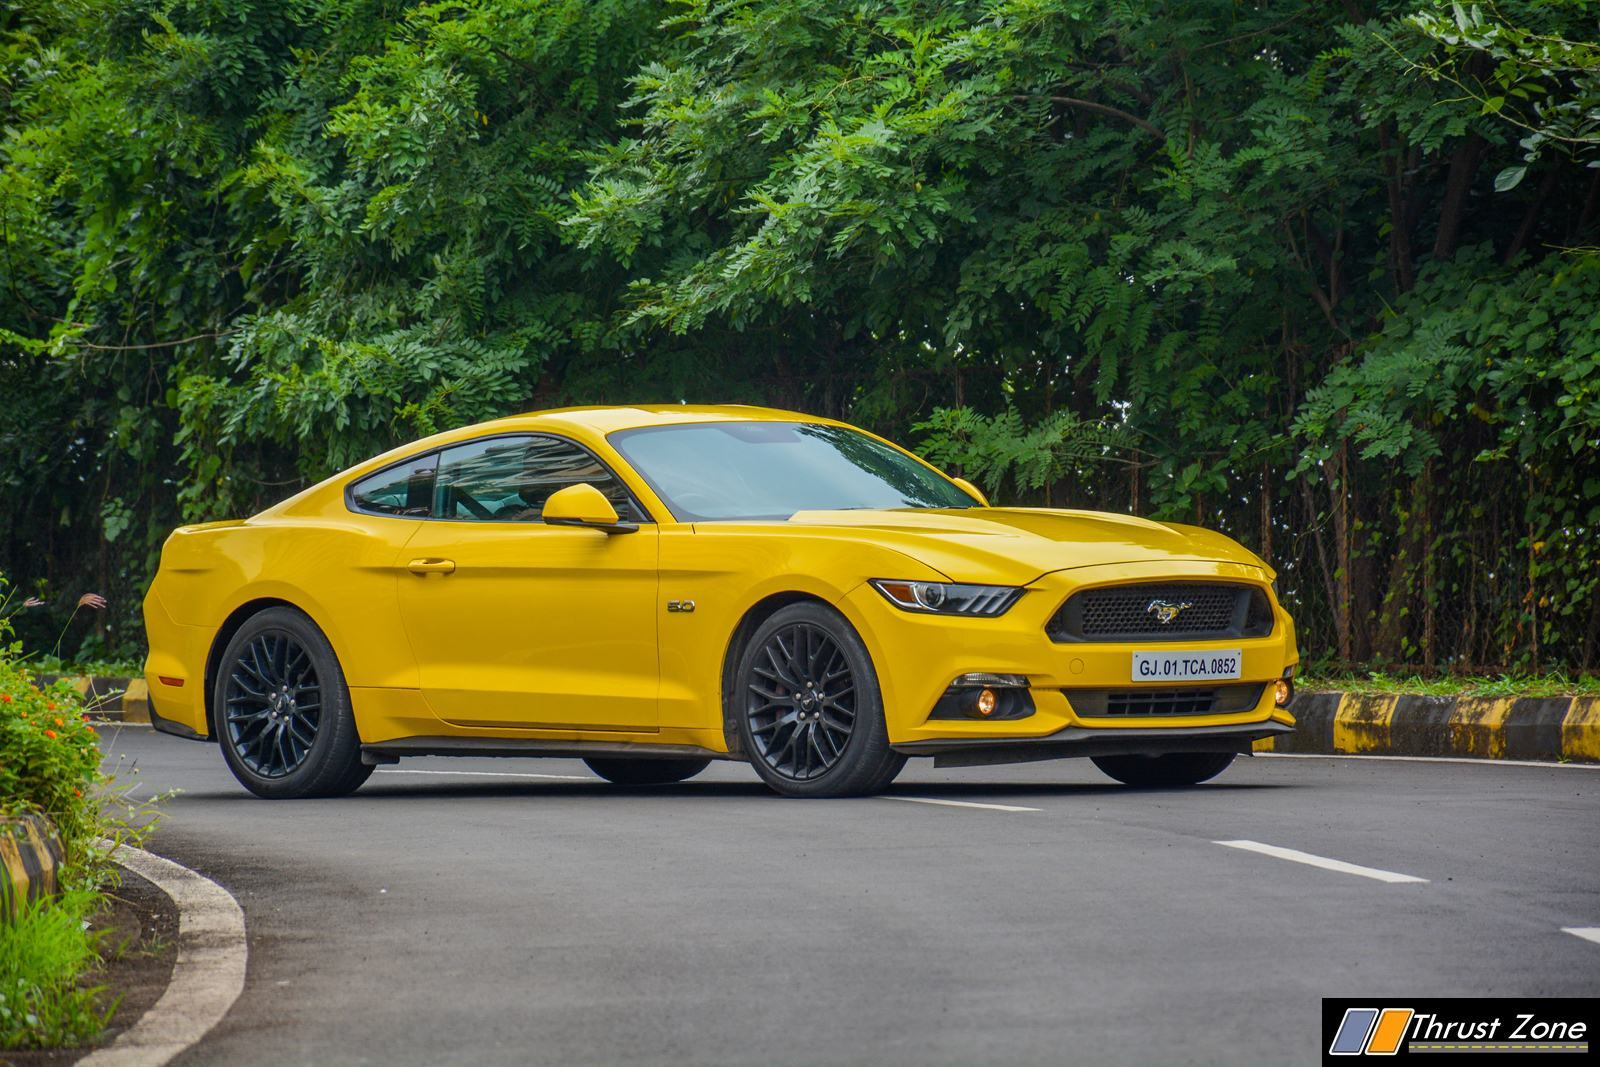 https://www.thrustzone.com/wp-content/uploads/2018/09/Ford-Mustang-India-V8-Review-17.jpg